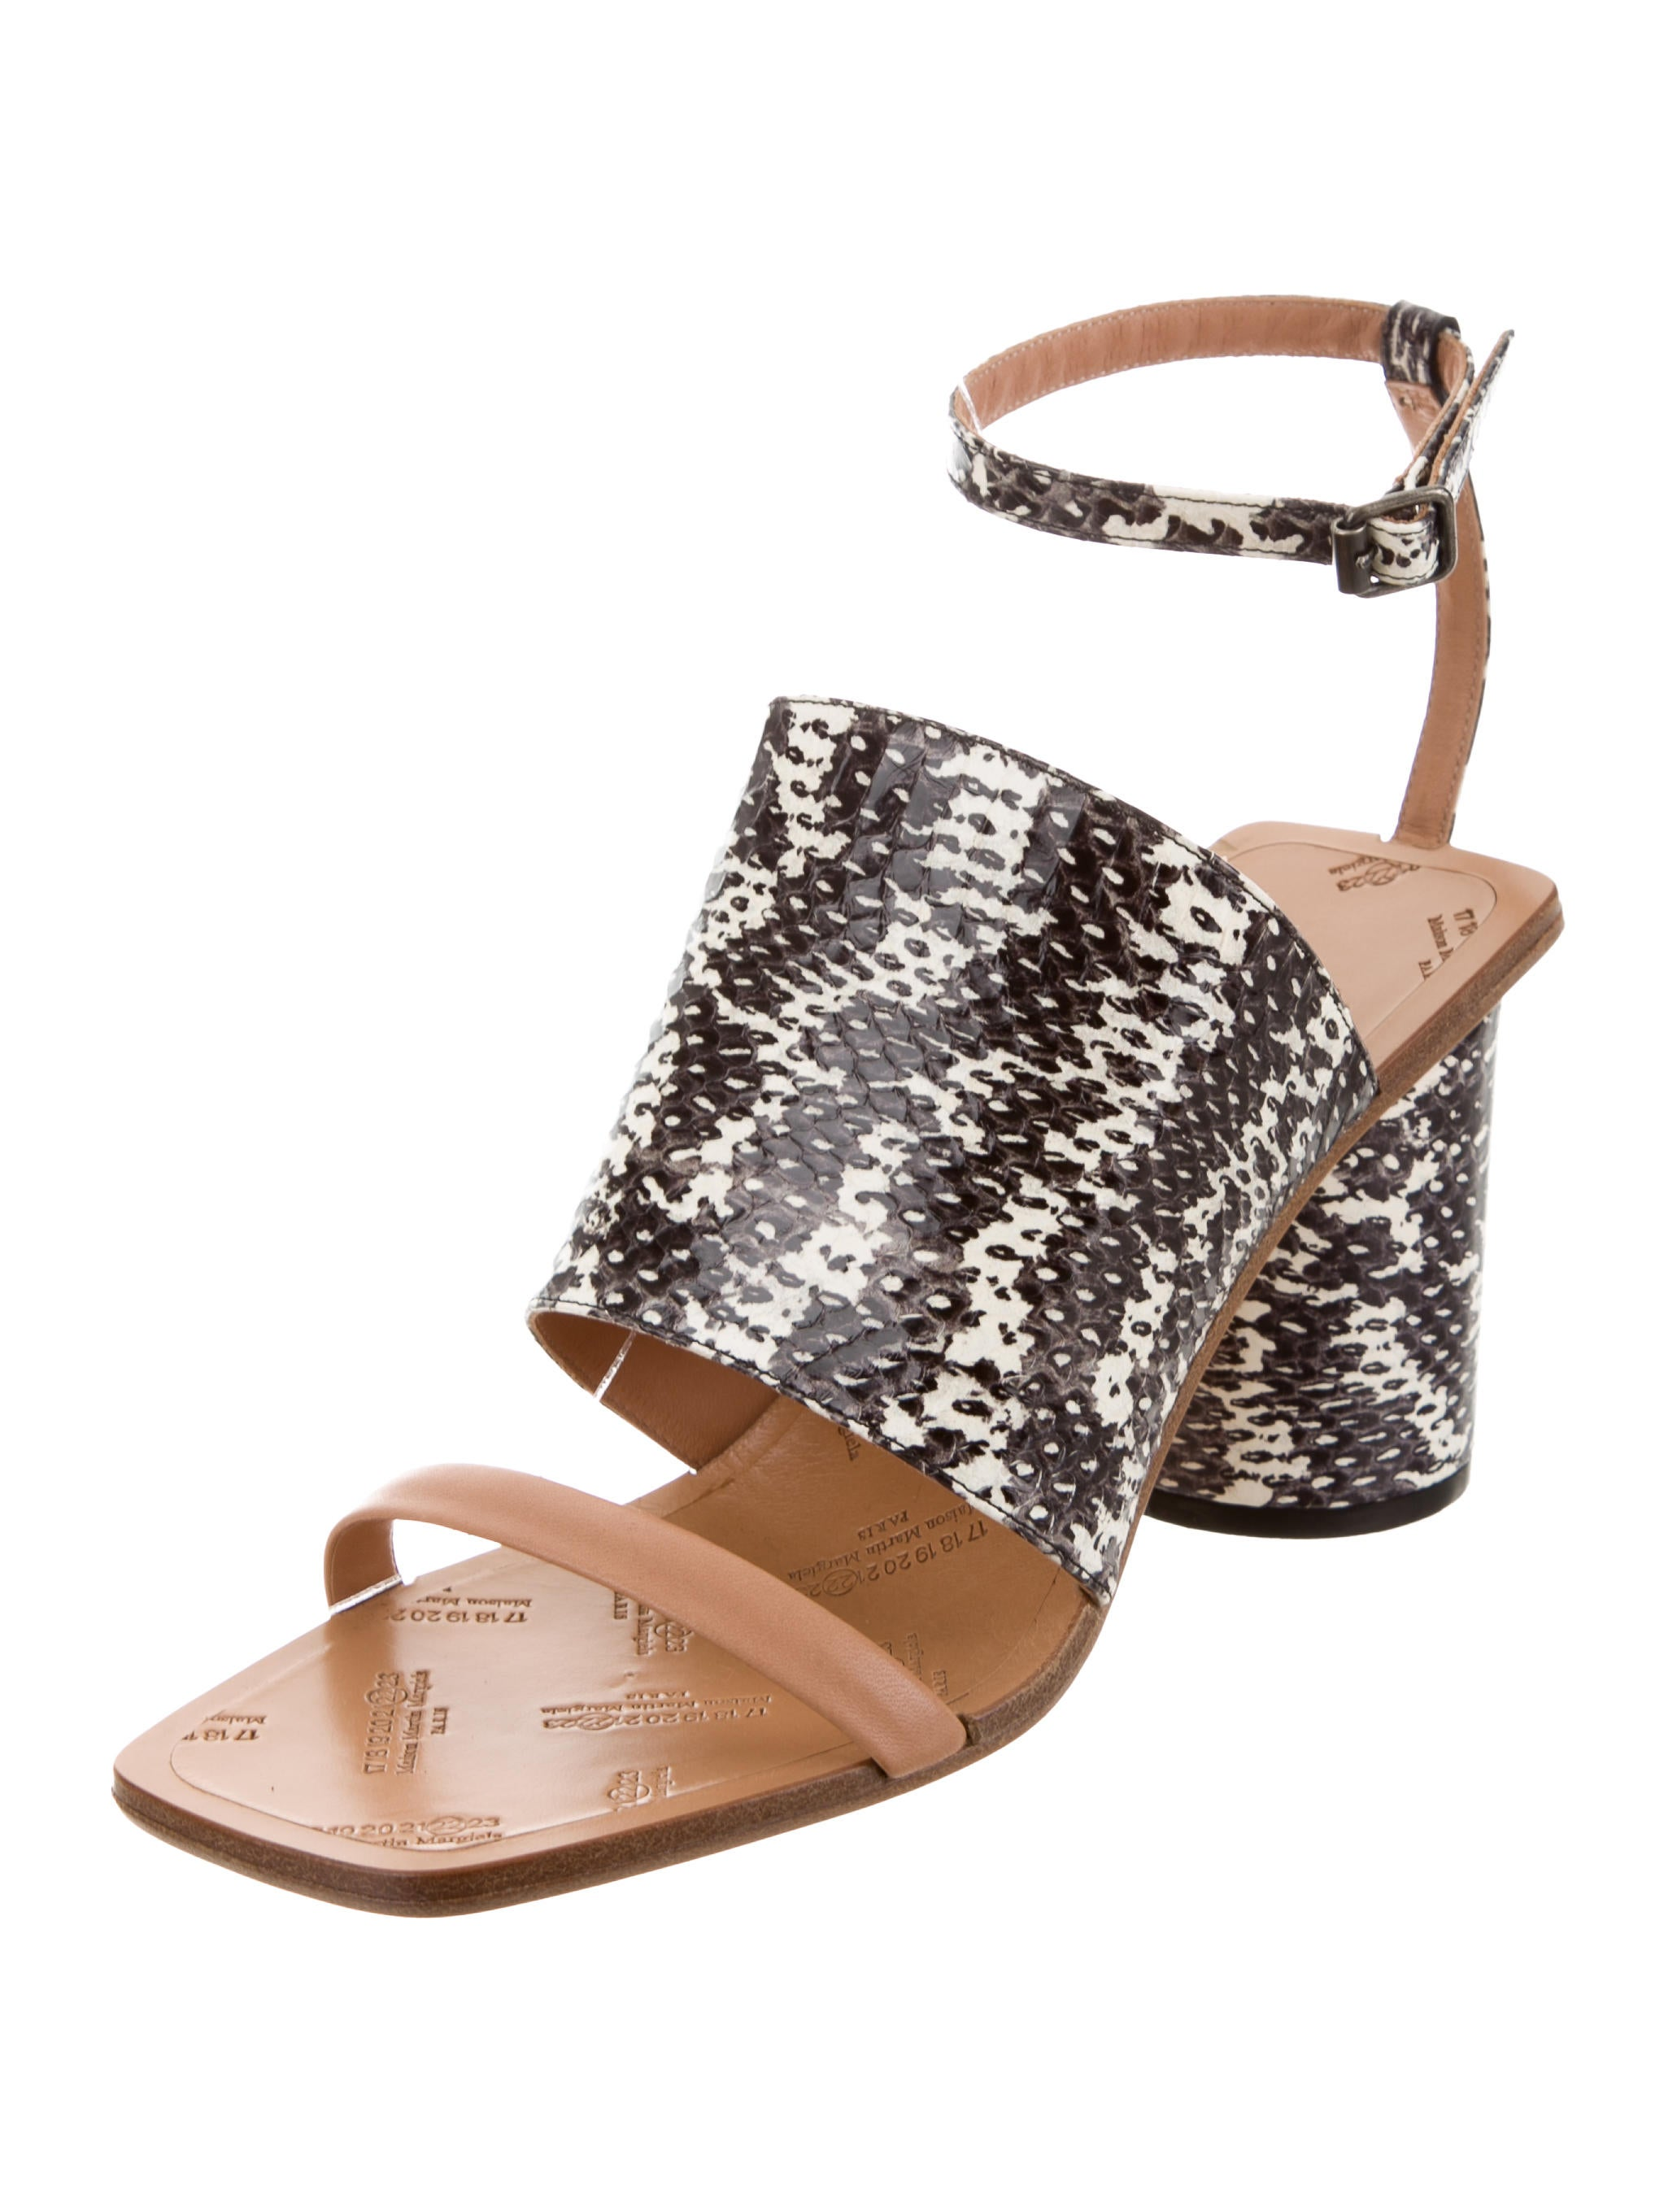 Maison Margiela Alina Ankle Strap Sandals w/ Tags cheap sale good selling cheap sale looking for free shipping exclusive clearance 2014 new eE9LMC1a